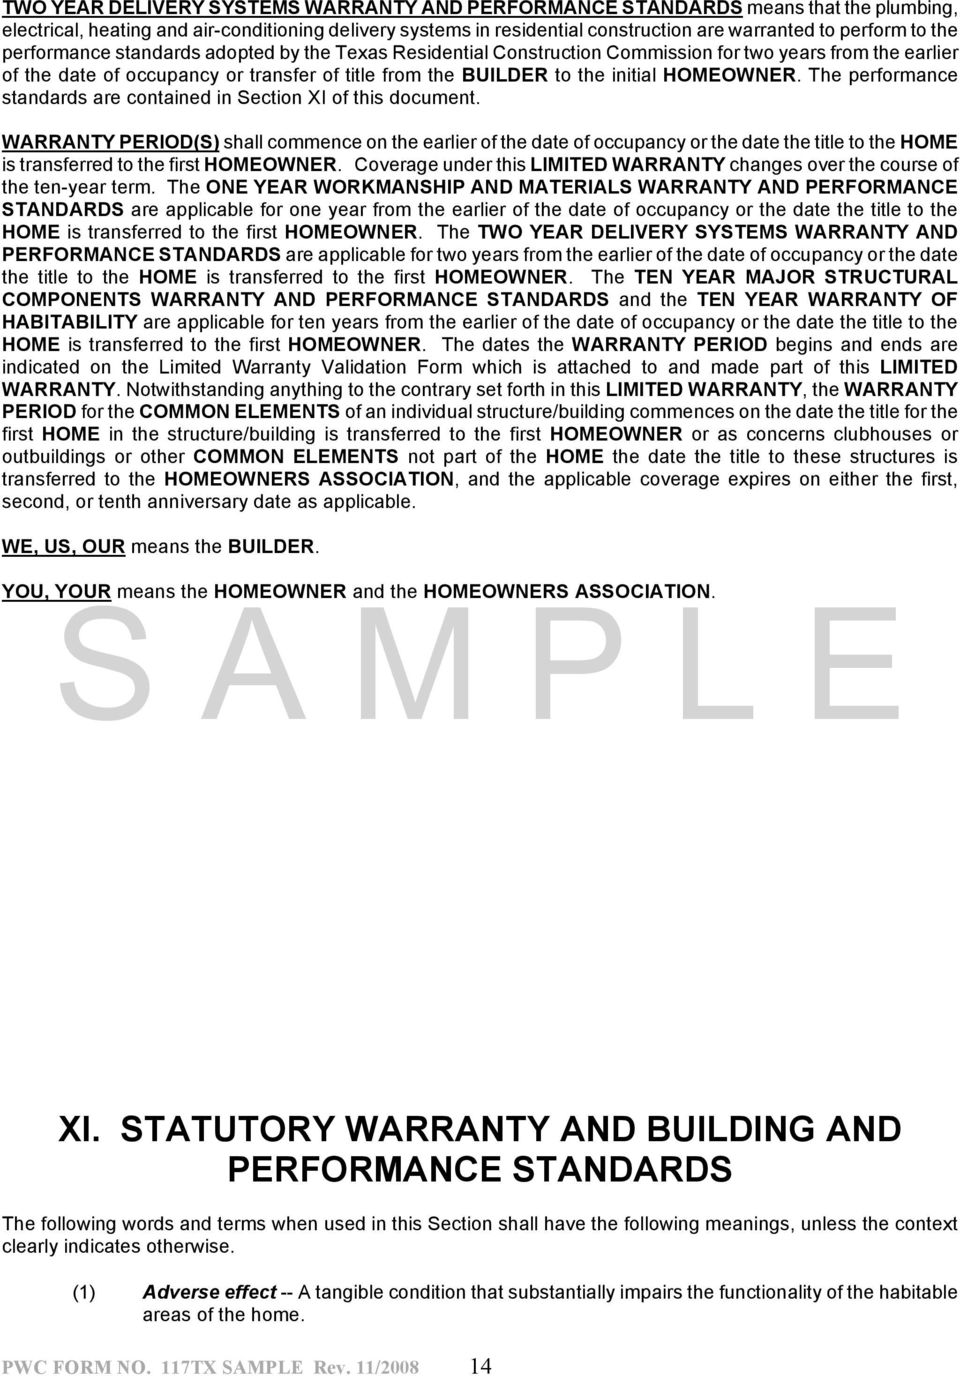 Home Builder S Limited Warranty Administered By Professional Warranty Service Corporation Pdf Free Download